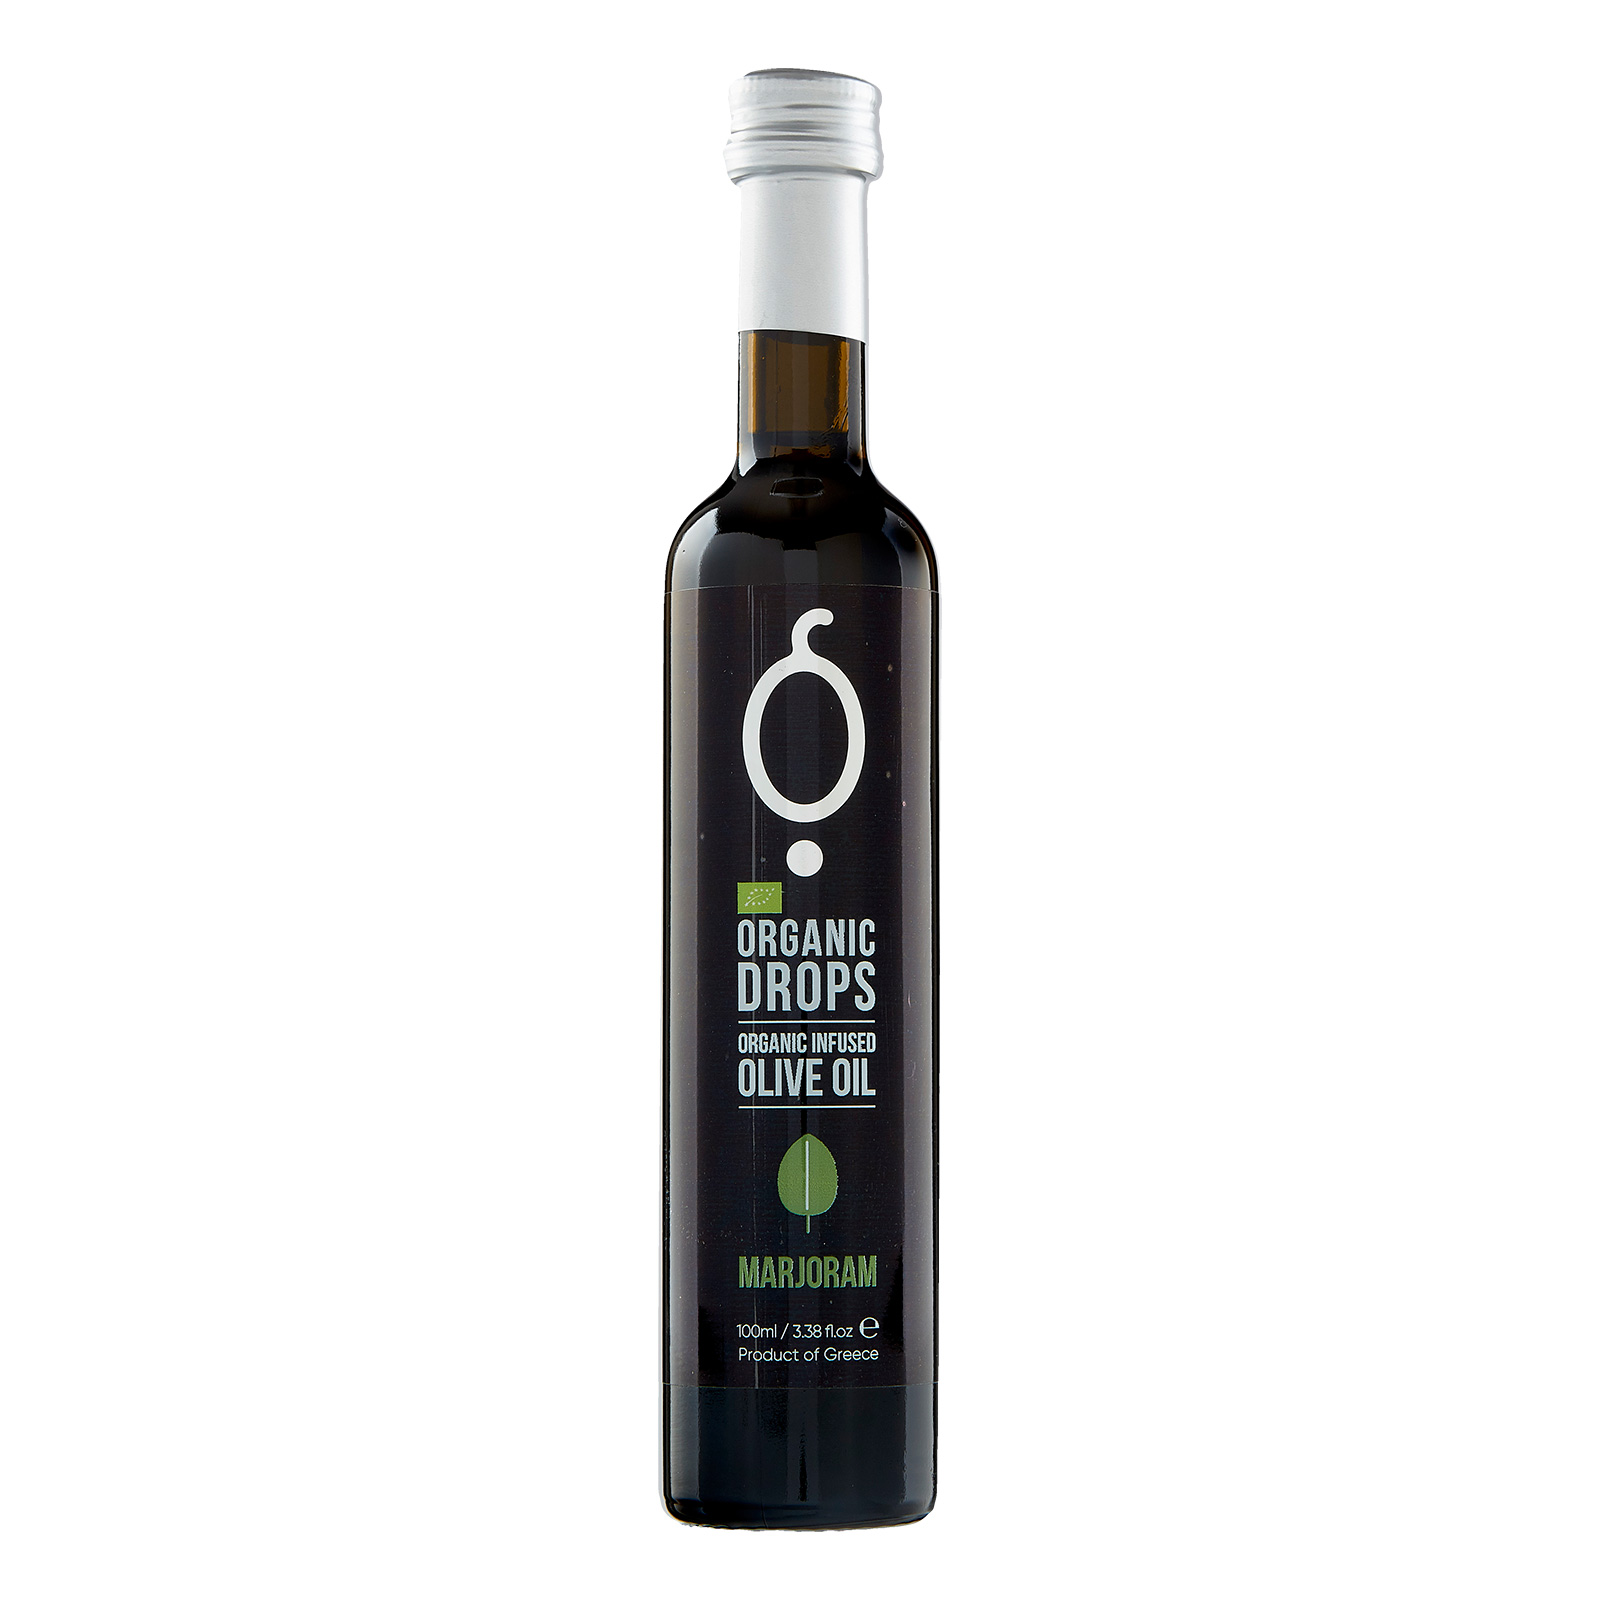 Organic Drops Marjoram Olive Oil 3.38 fl.oz Bottle